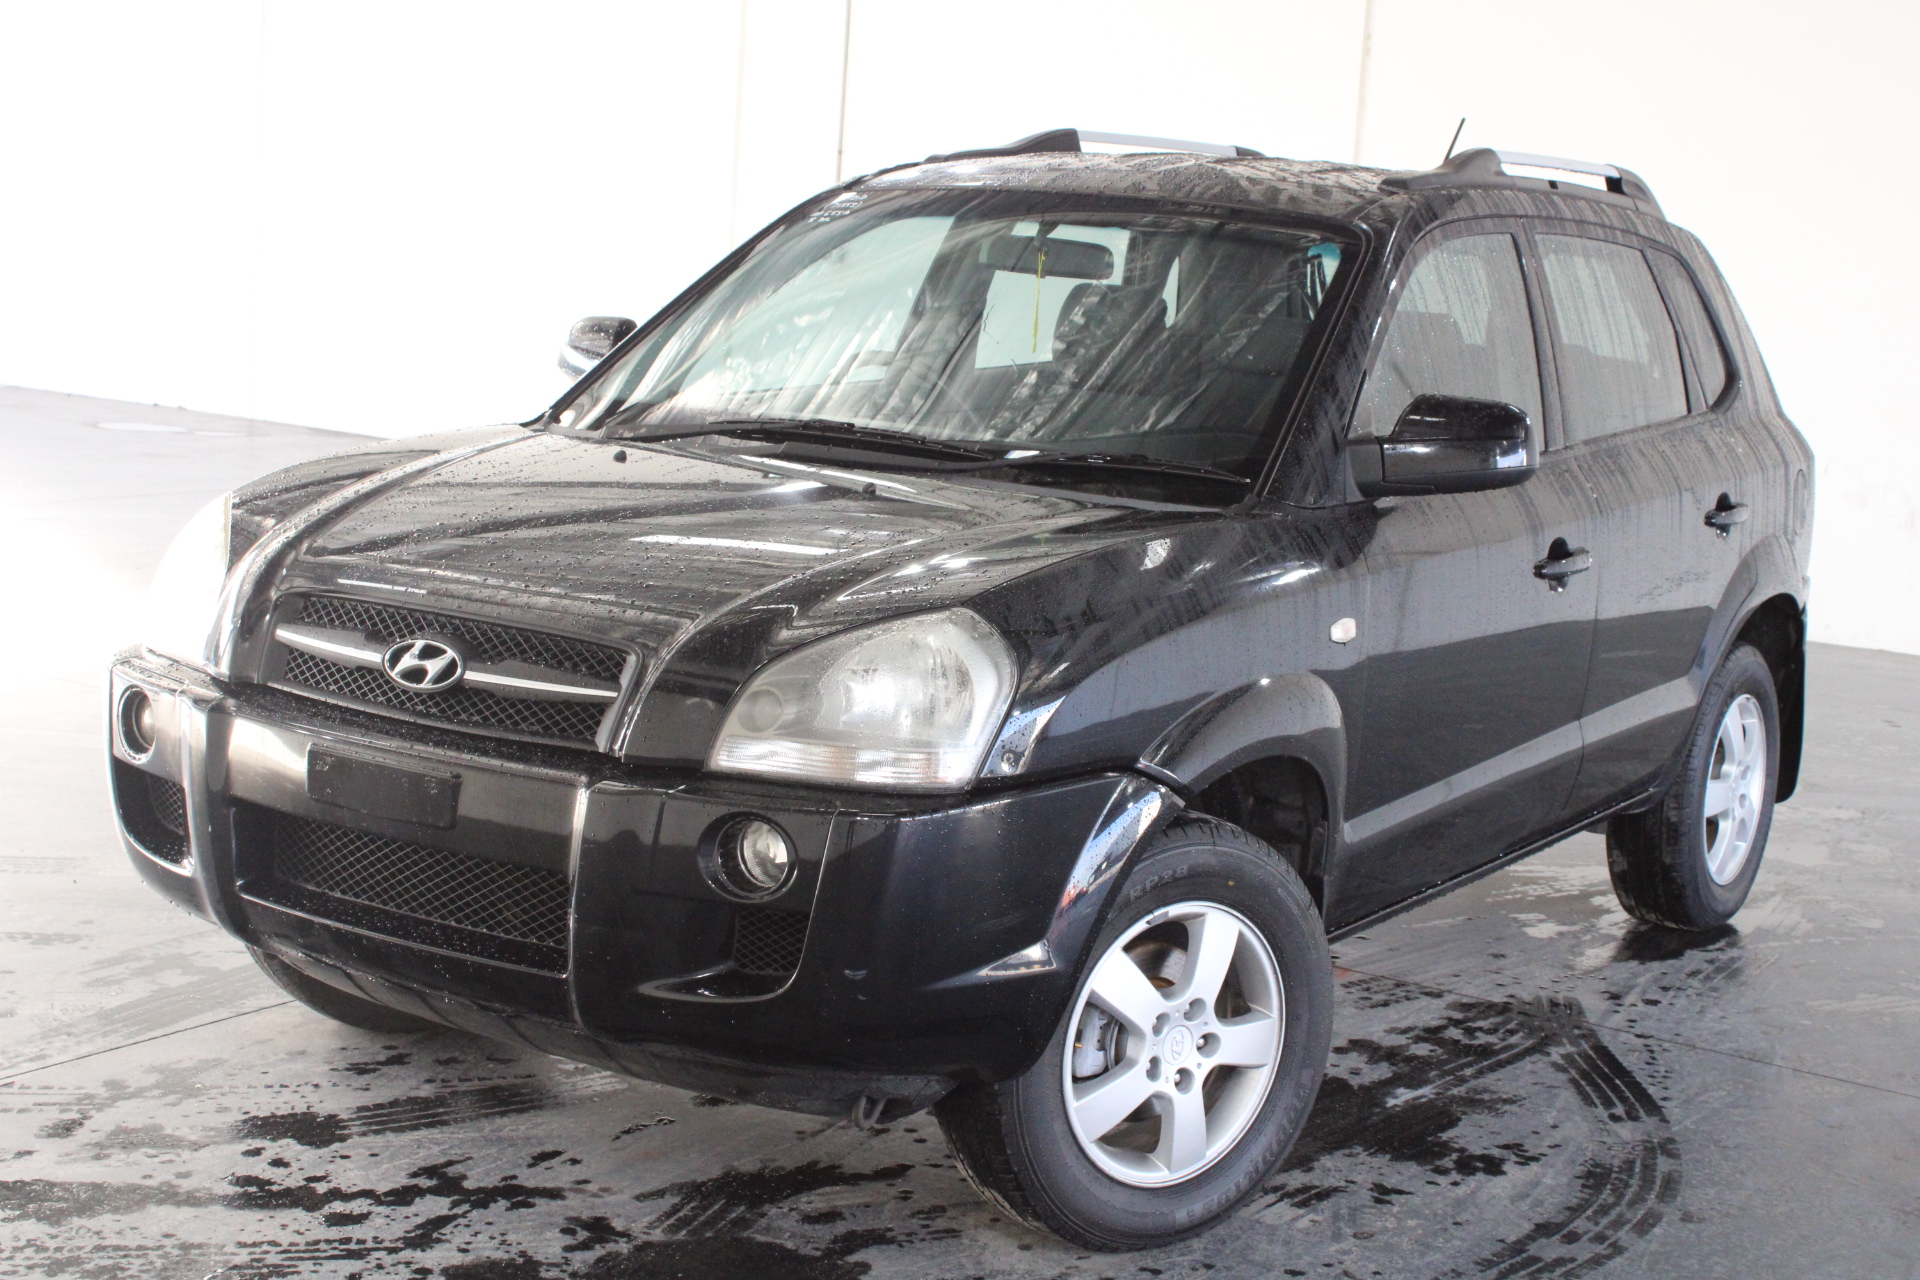 2005 Hyundai Tucson City Automatic Wagon